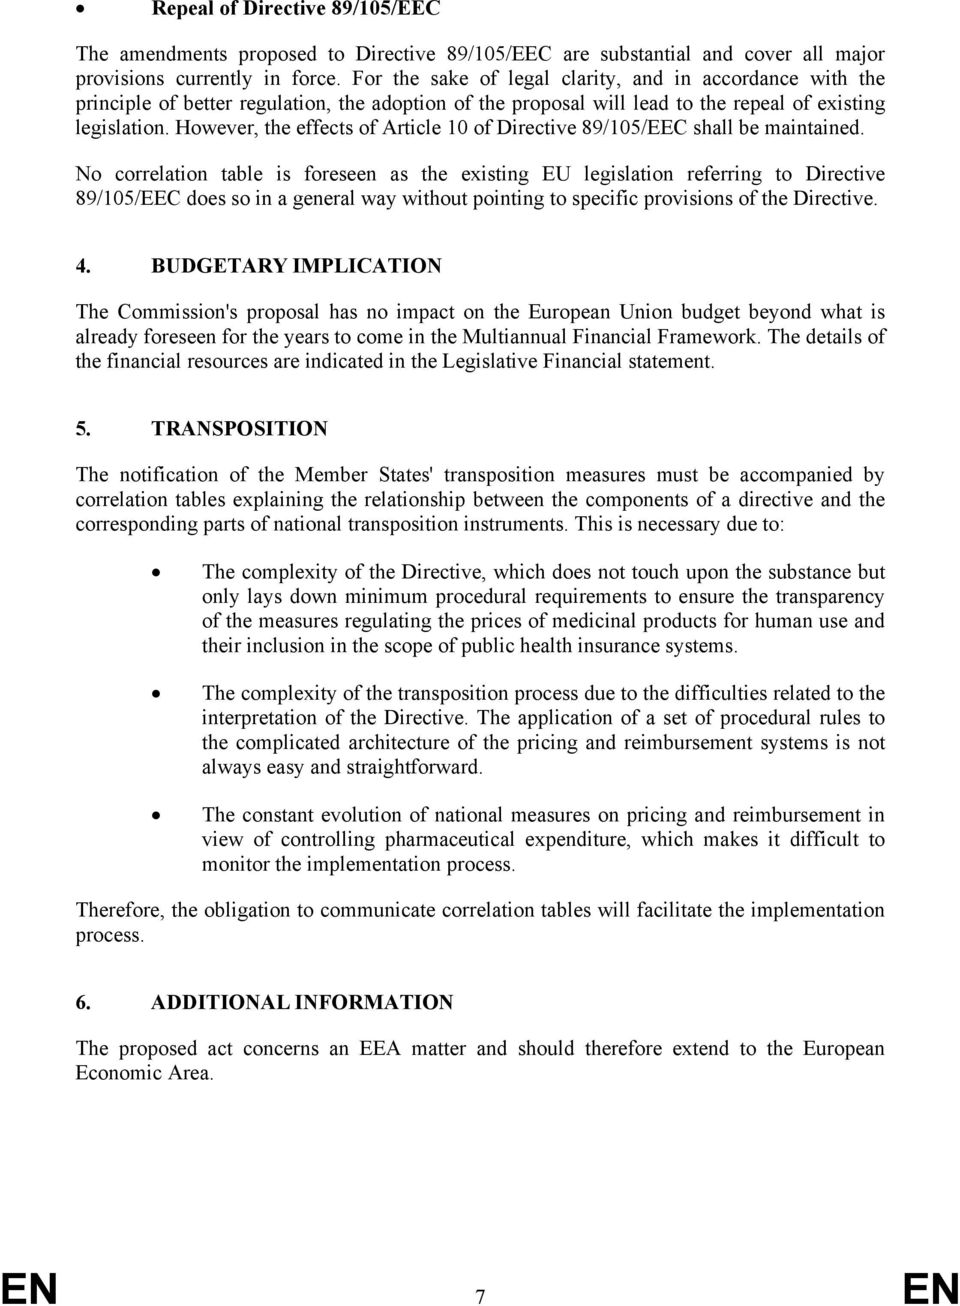 However, the effects of Article 10 of Directive 89/105/EEC shall be maintained.